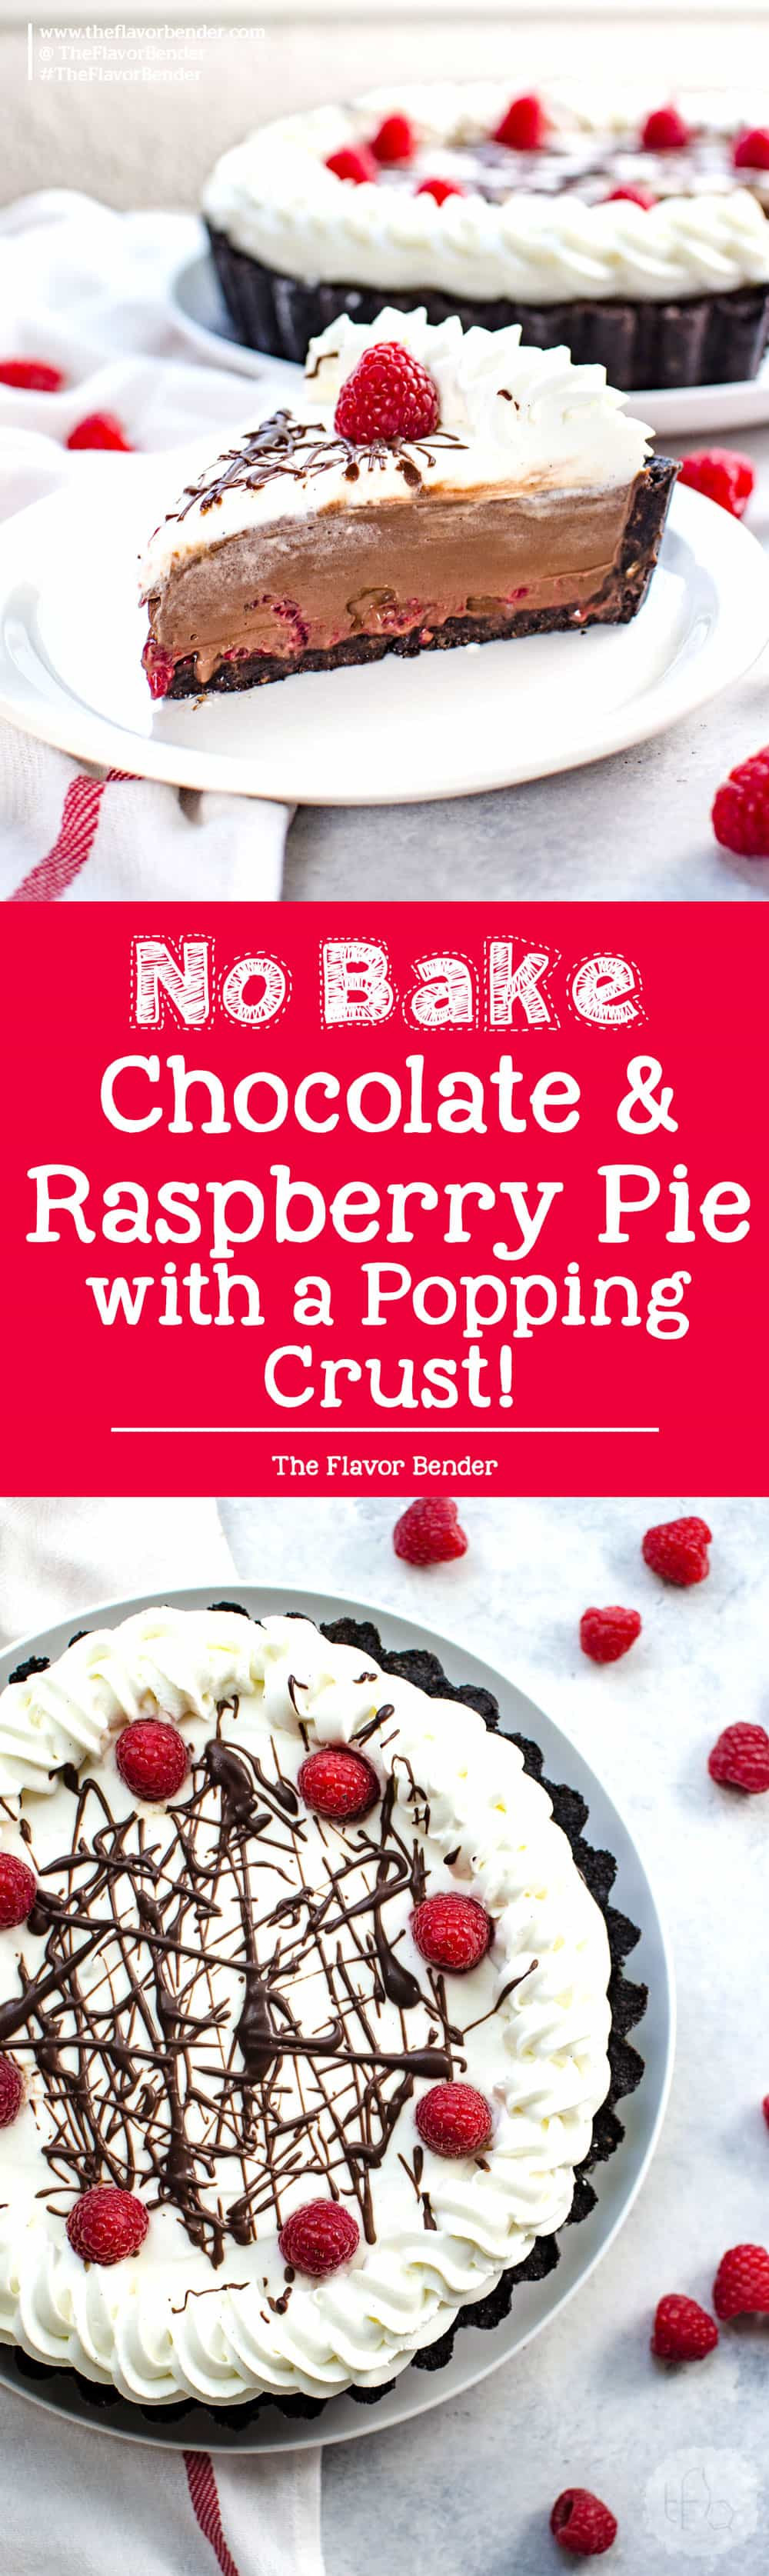 Popping No Bake Chocolate Raspberry Pie - An irresistibly creamy, smooth, and fool-proof dessert with  a decadent chocolate pudding filling, with fresh raspberries and a pop rock cookie crust!